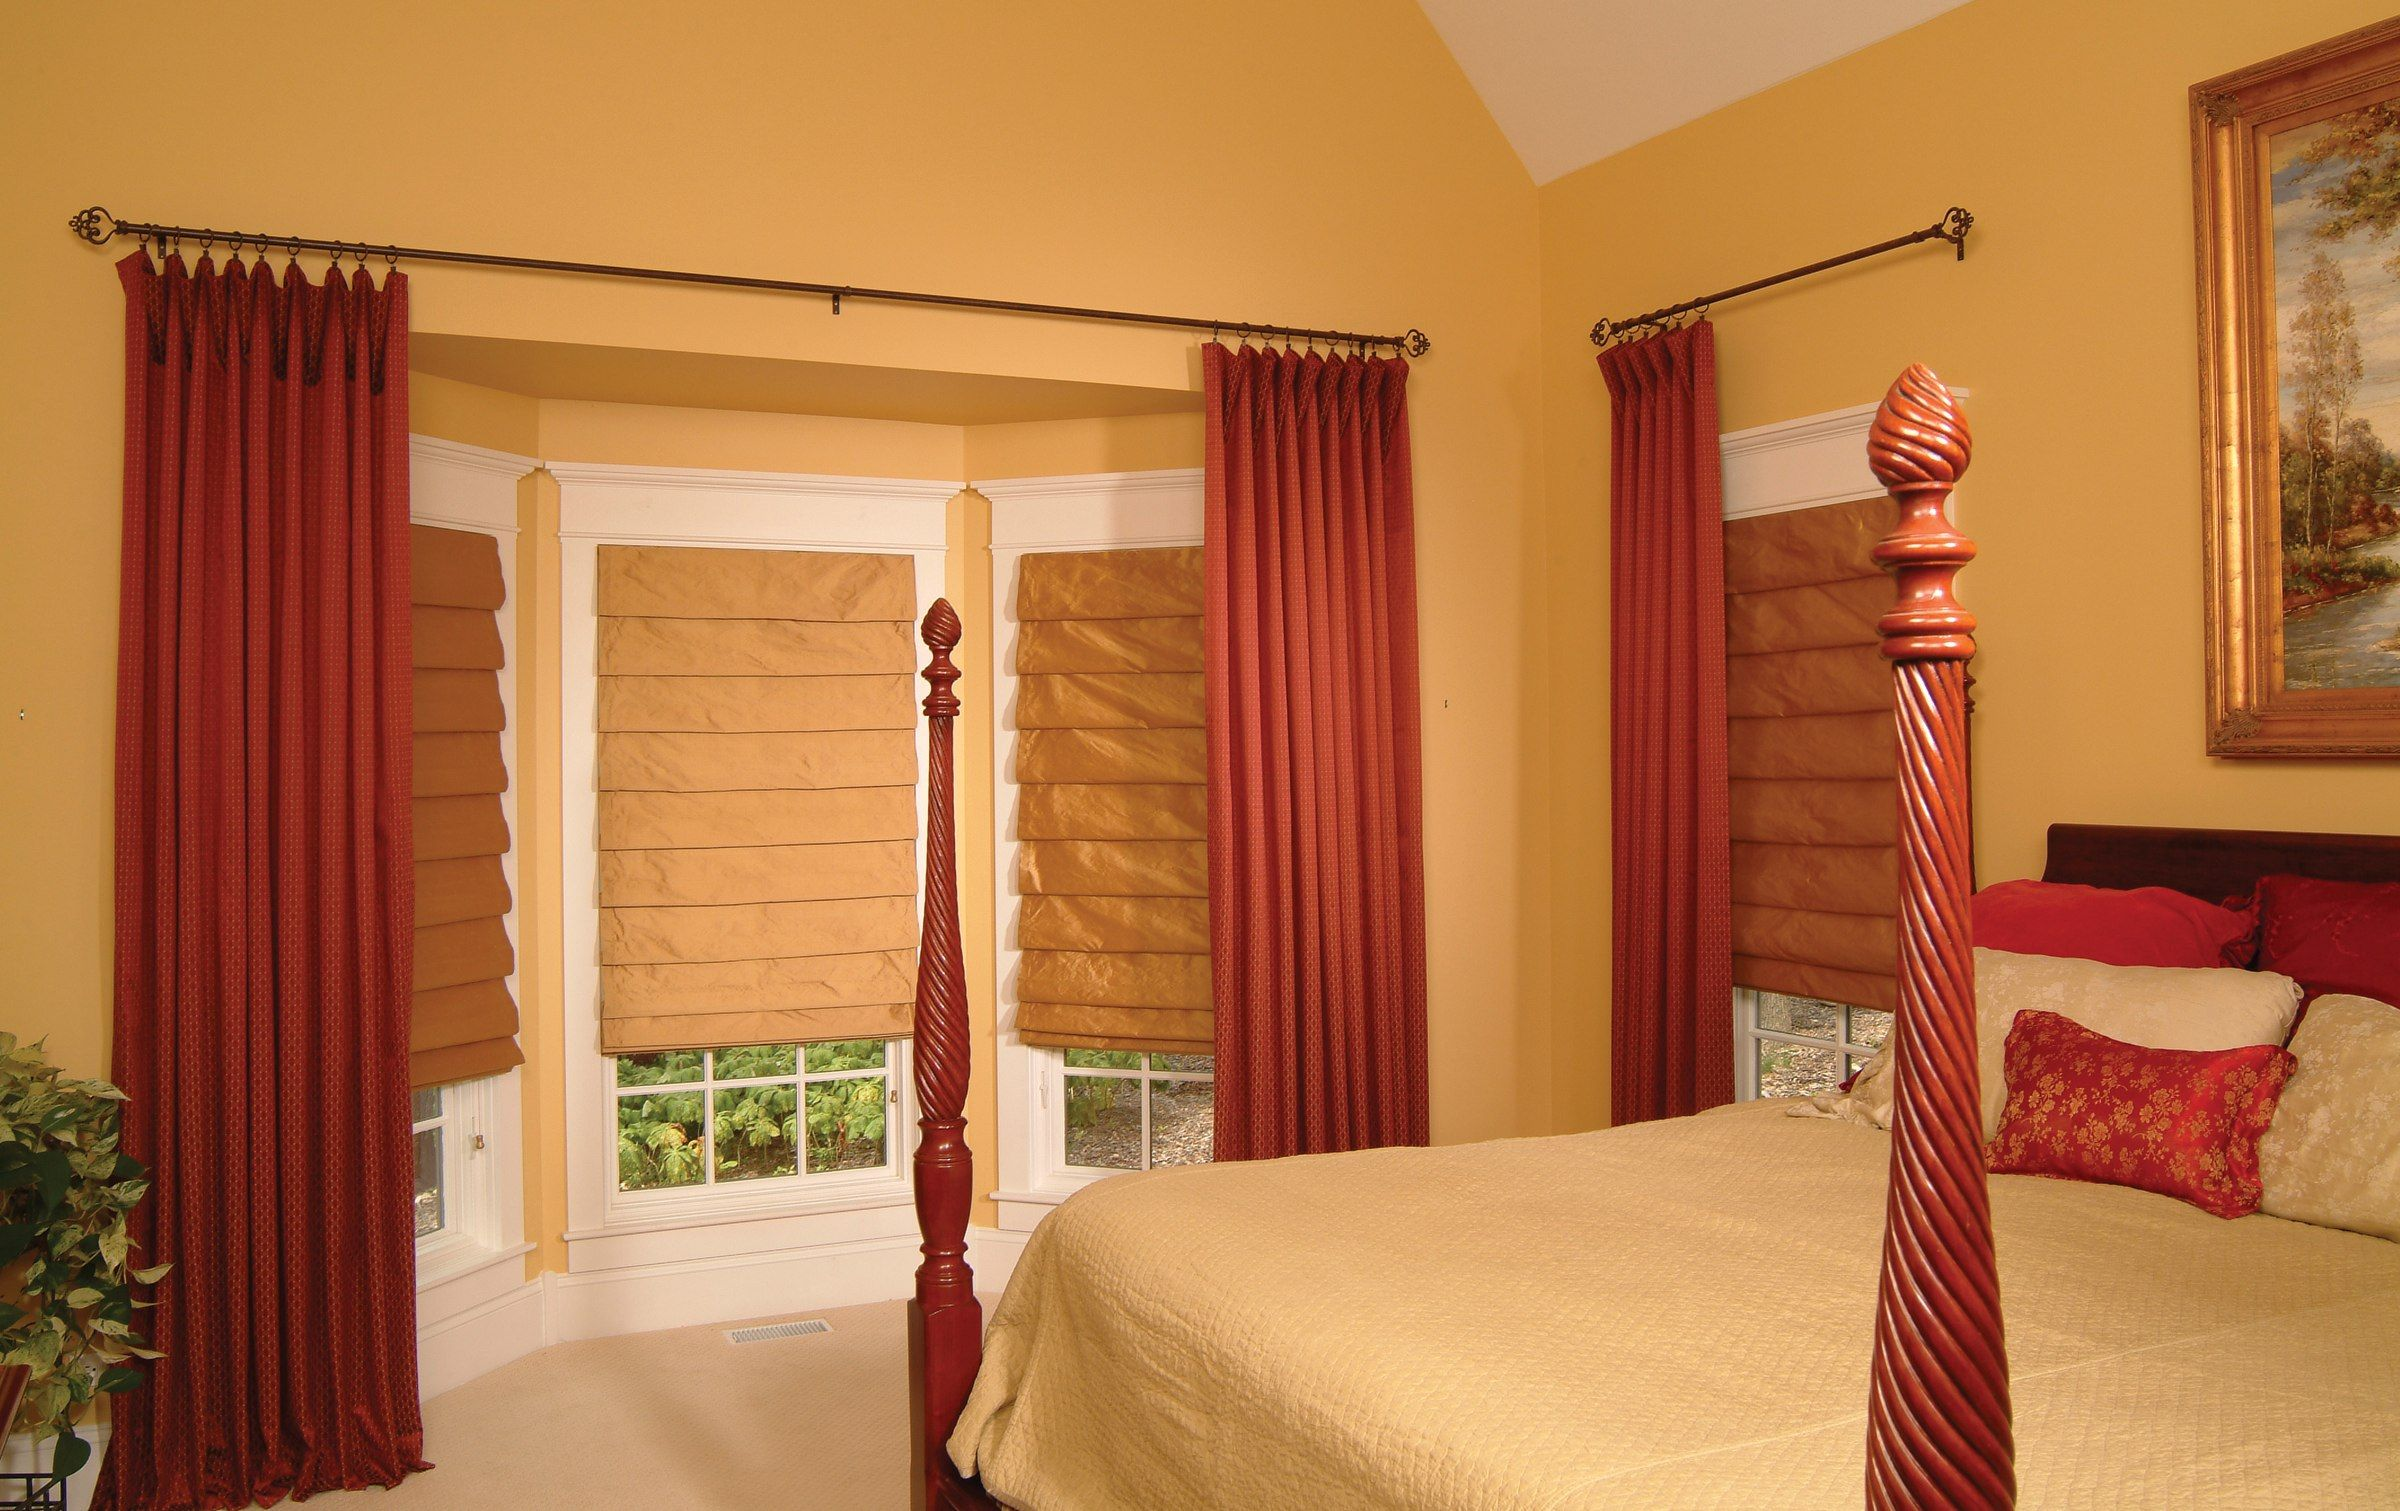 Master bedroom yellow walls  Cool Design Window Treatments on a Budget  decorating  Pinterest